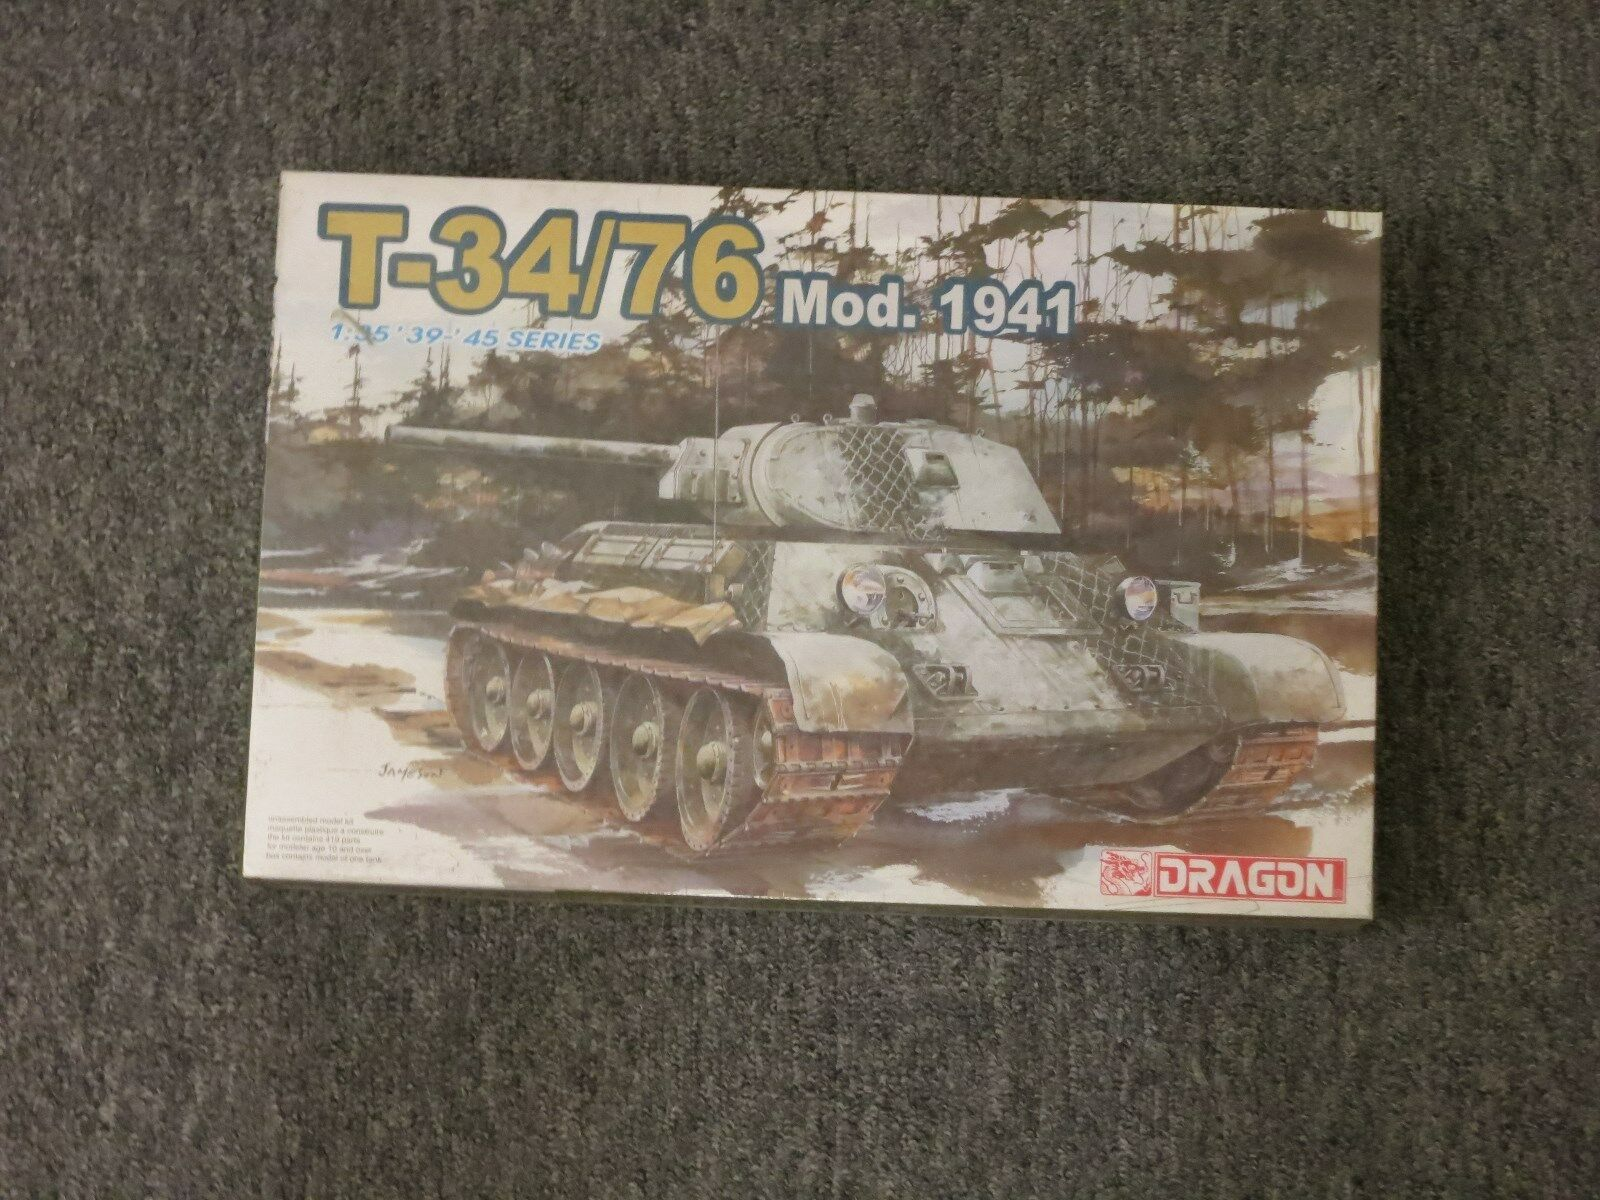 Dragon 1 35 T-34 76 Mod.1941 Model Kit '39-'45 Series NEW